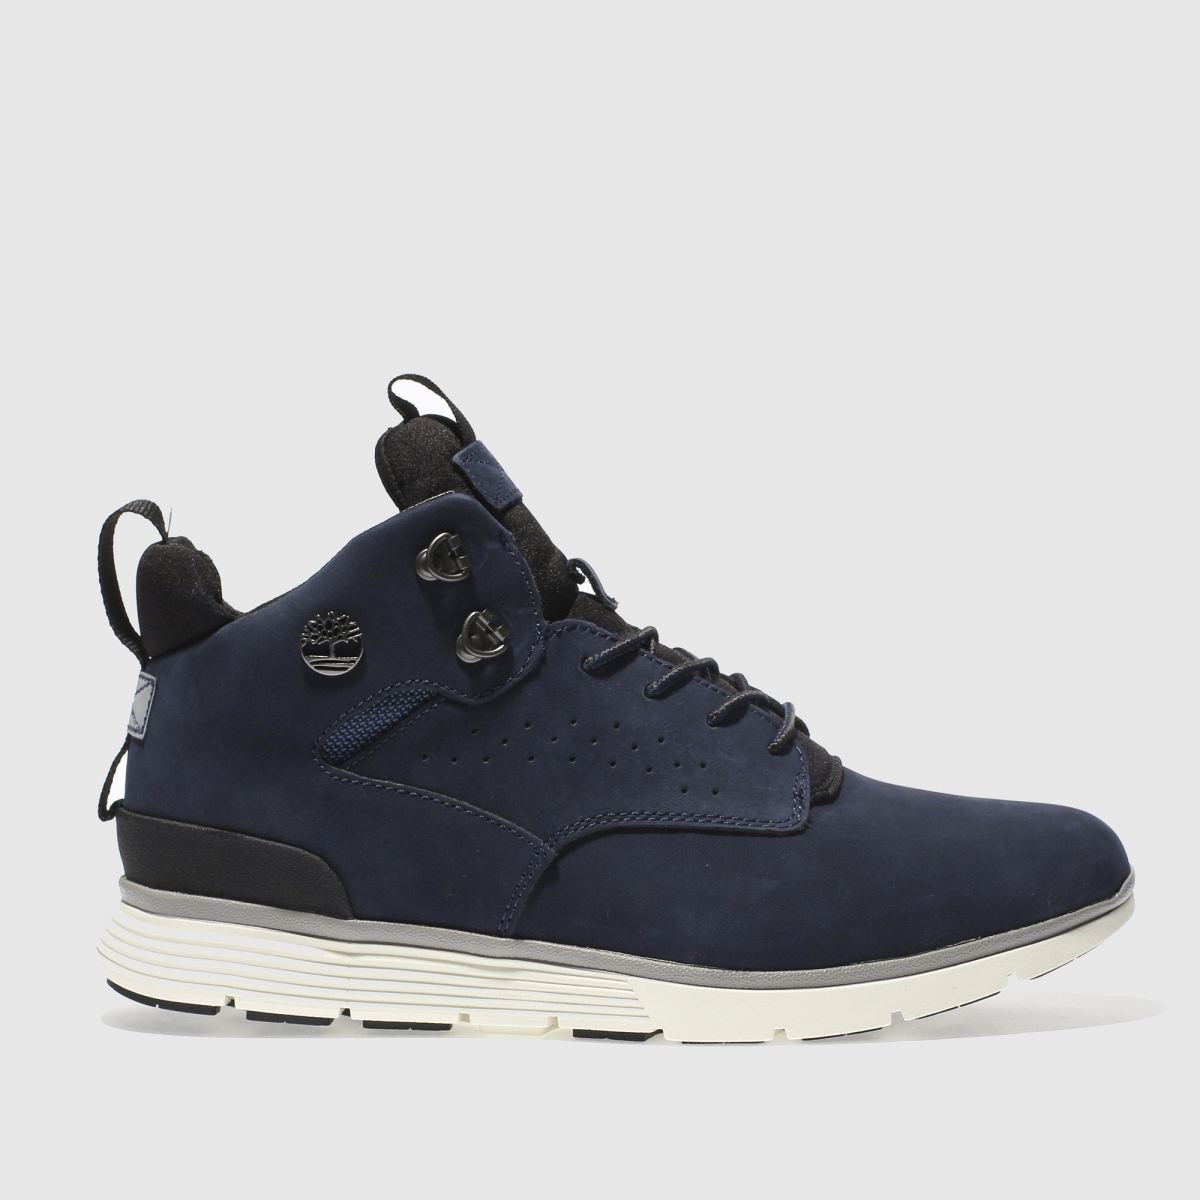 Timberland Navy Killington Boots